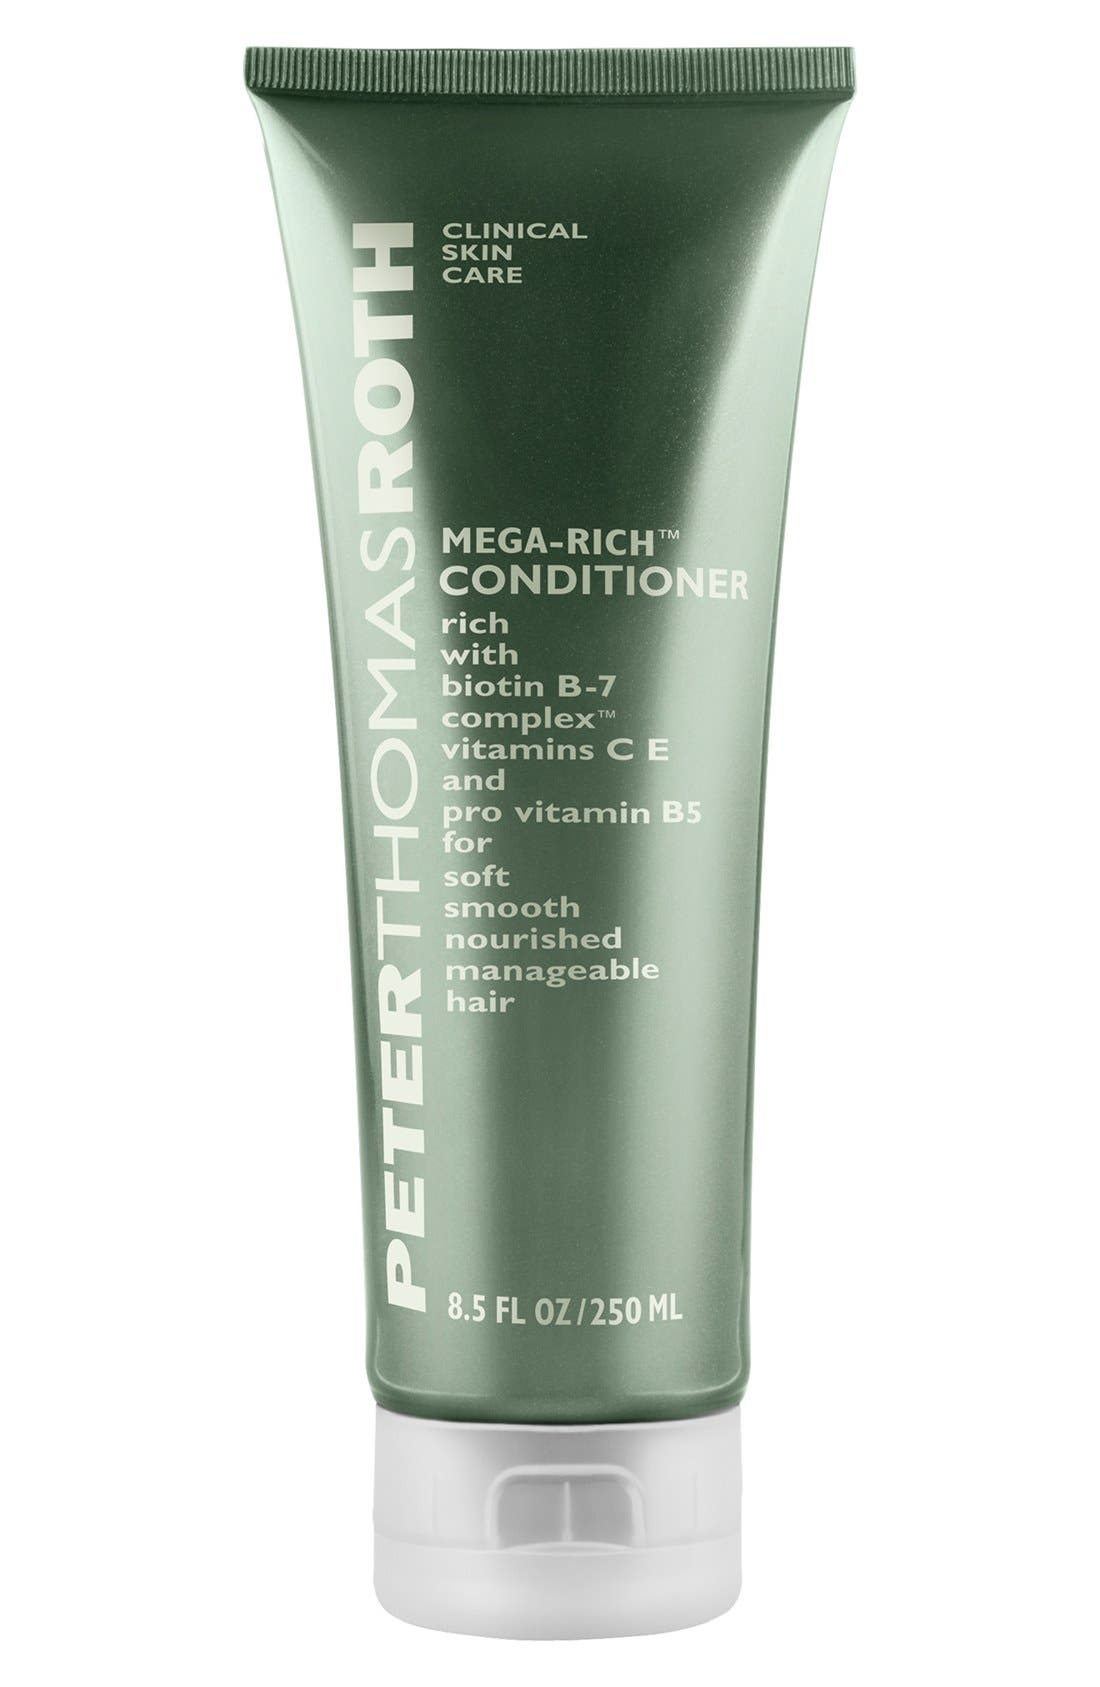 Peter Thomas Roth 'Mega-Rich' Conditioner